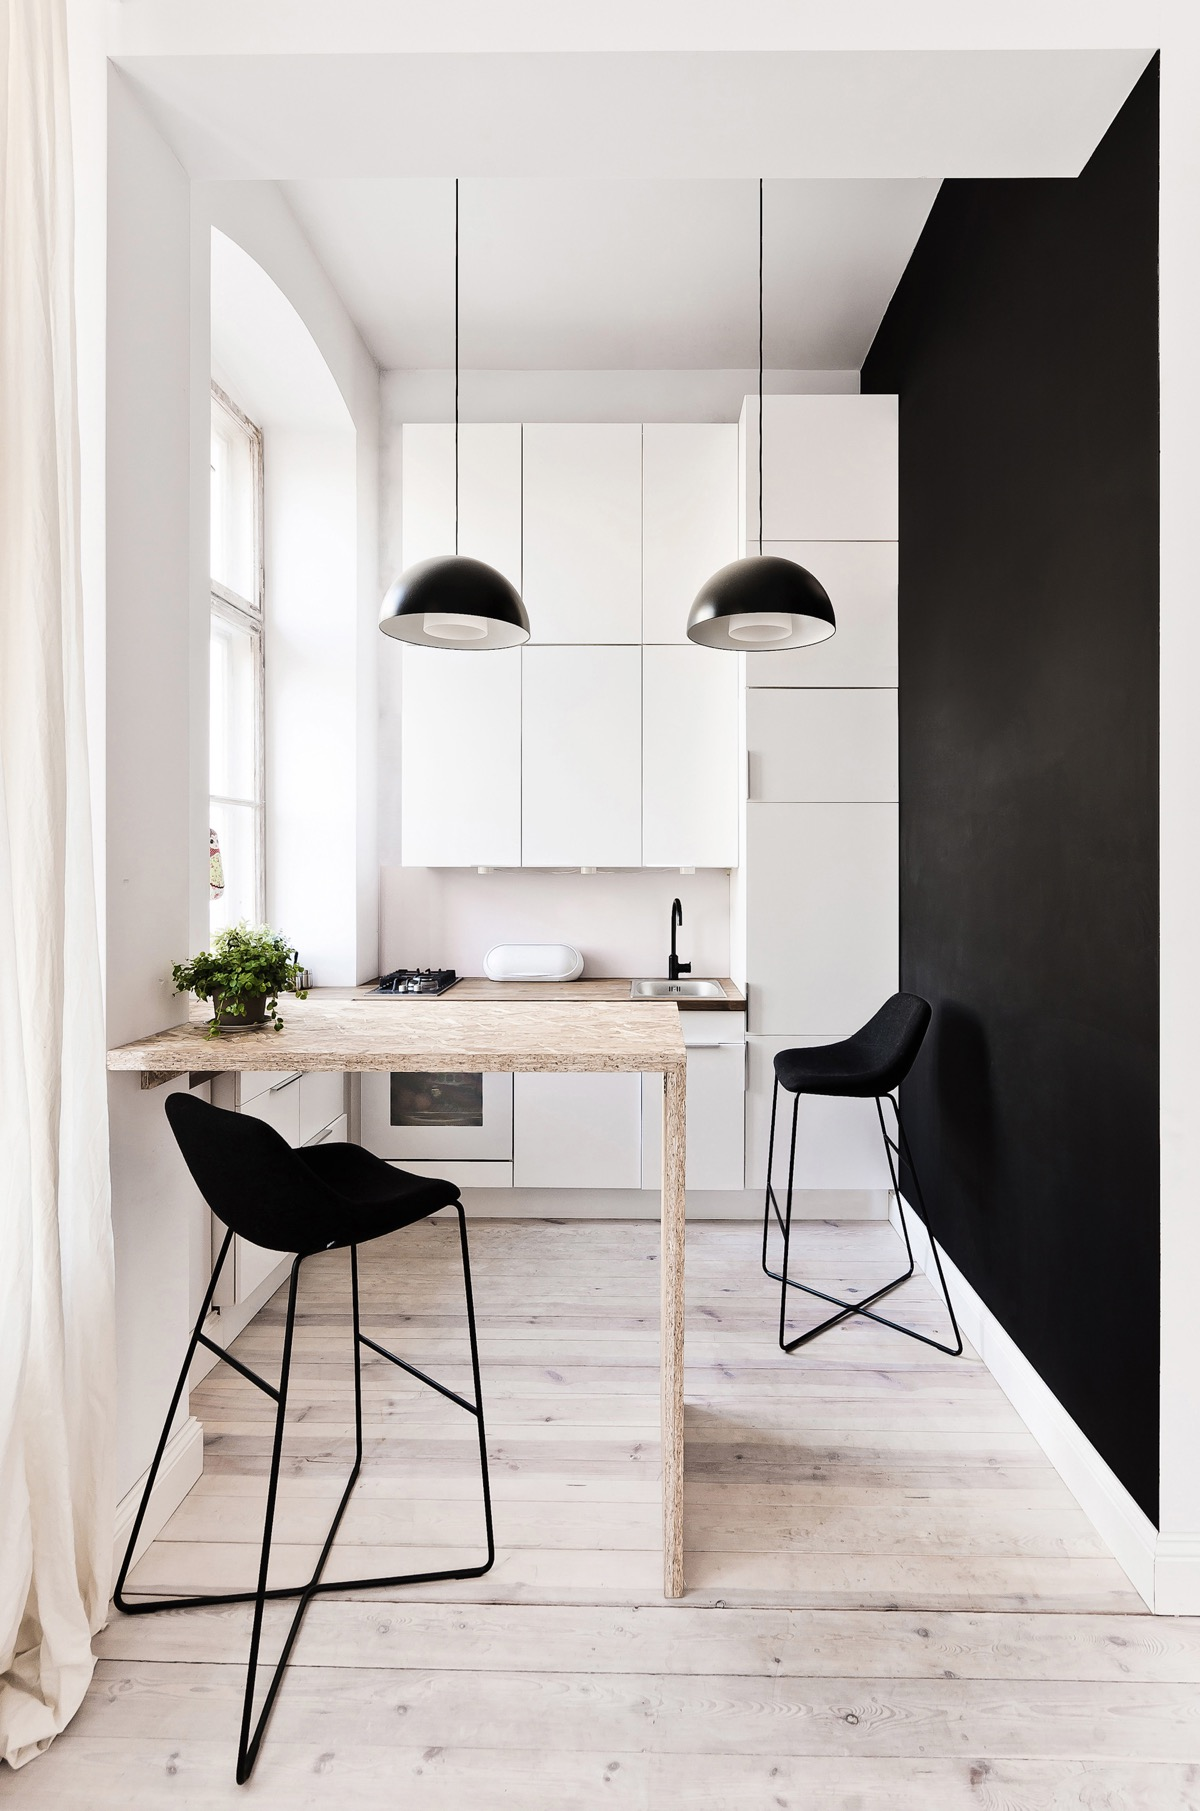 50 Splendid Small Kitchens And Ideas You Can Use From Them images 9